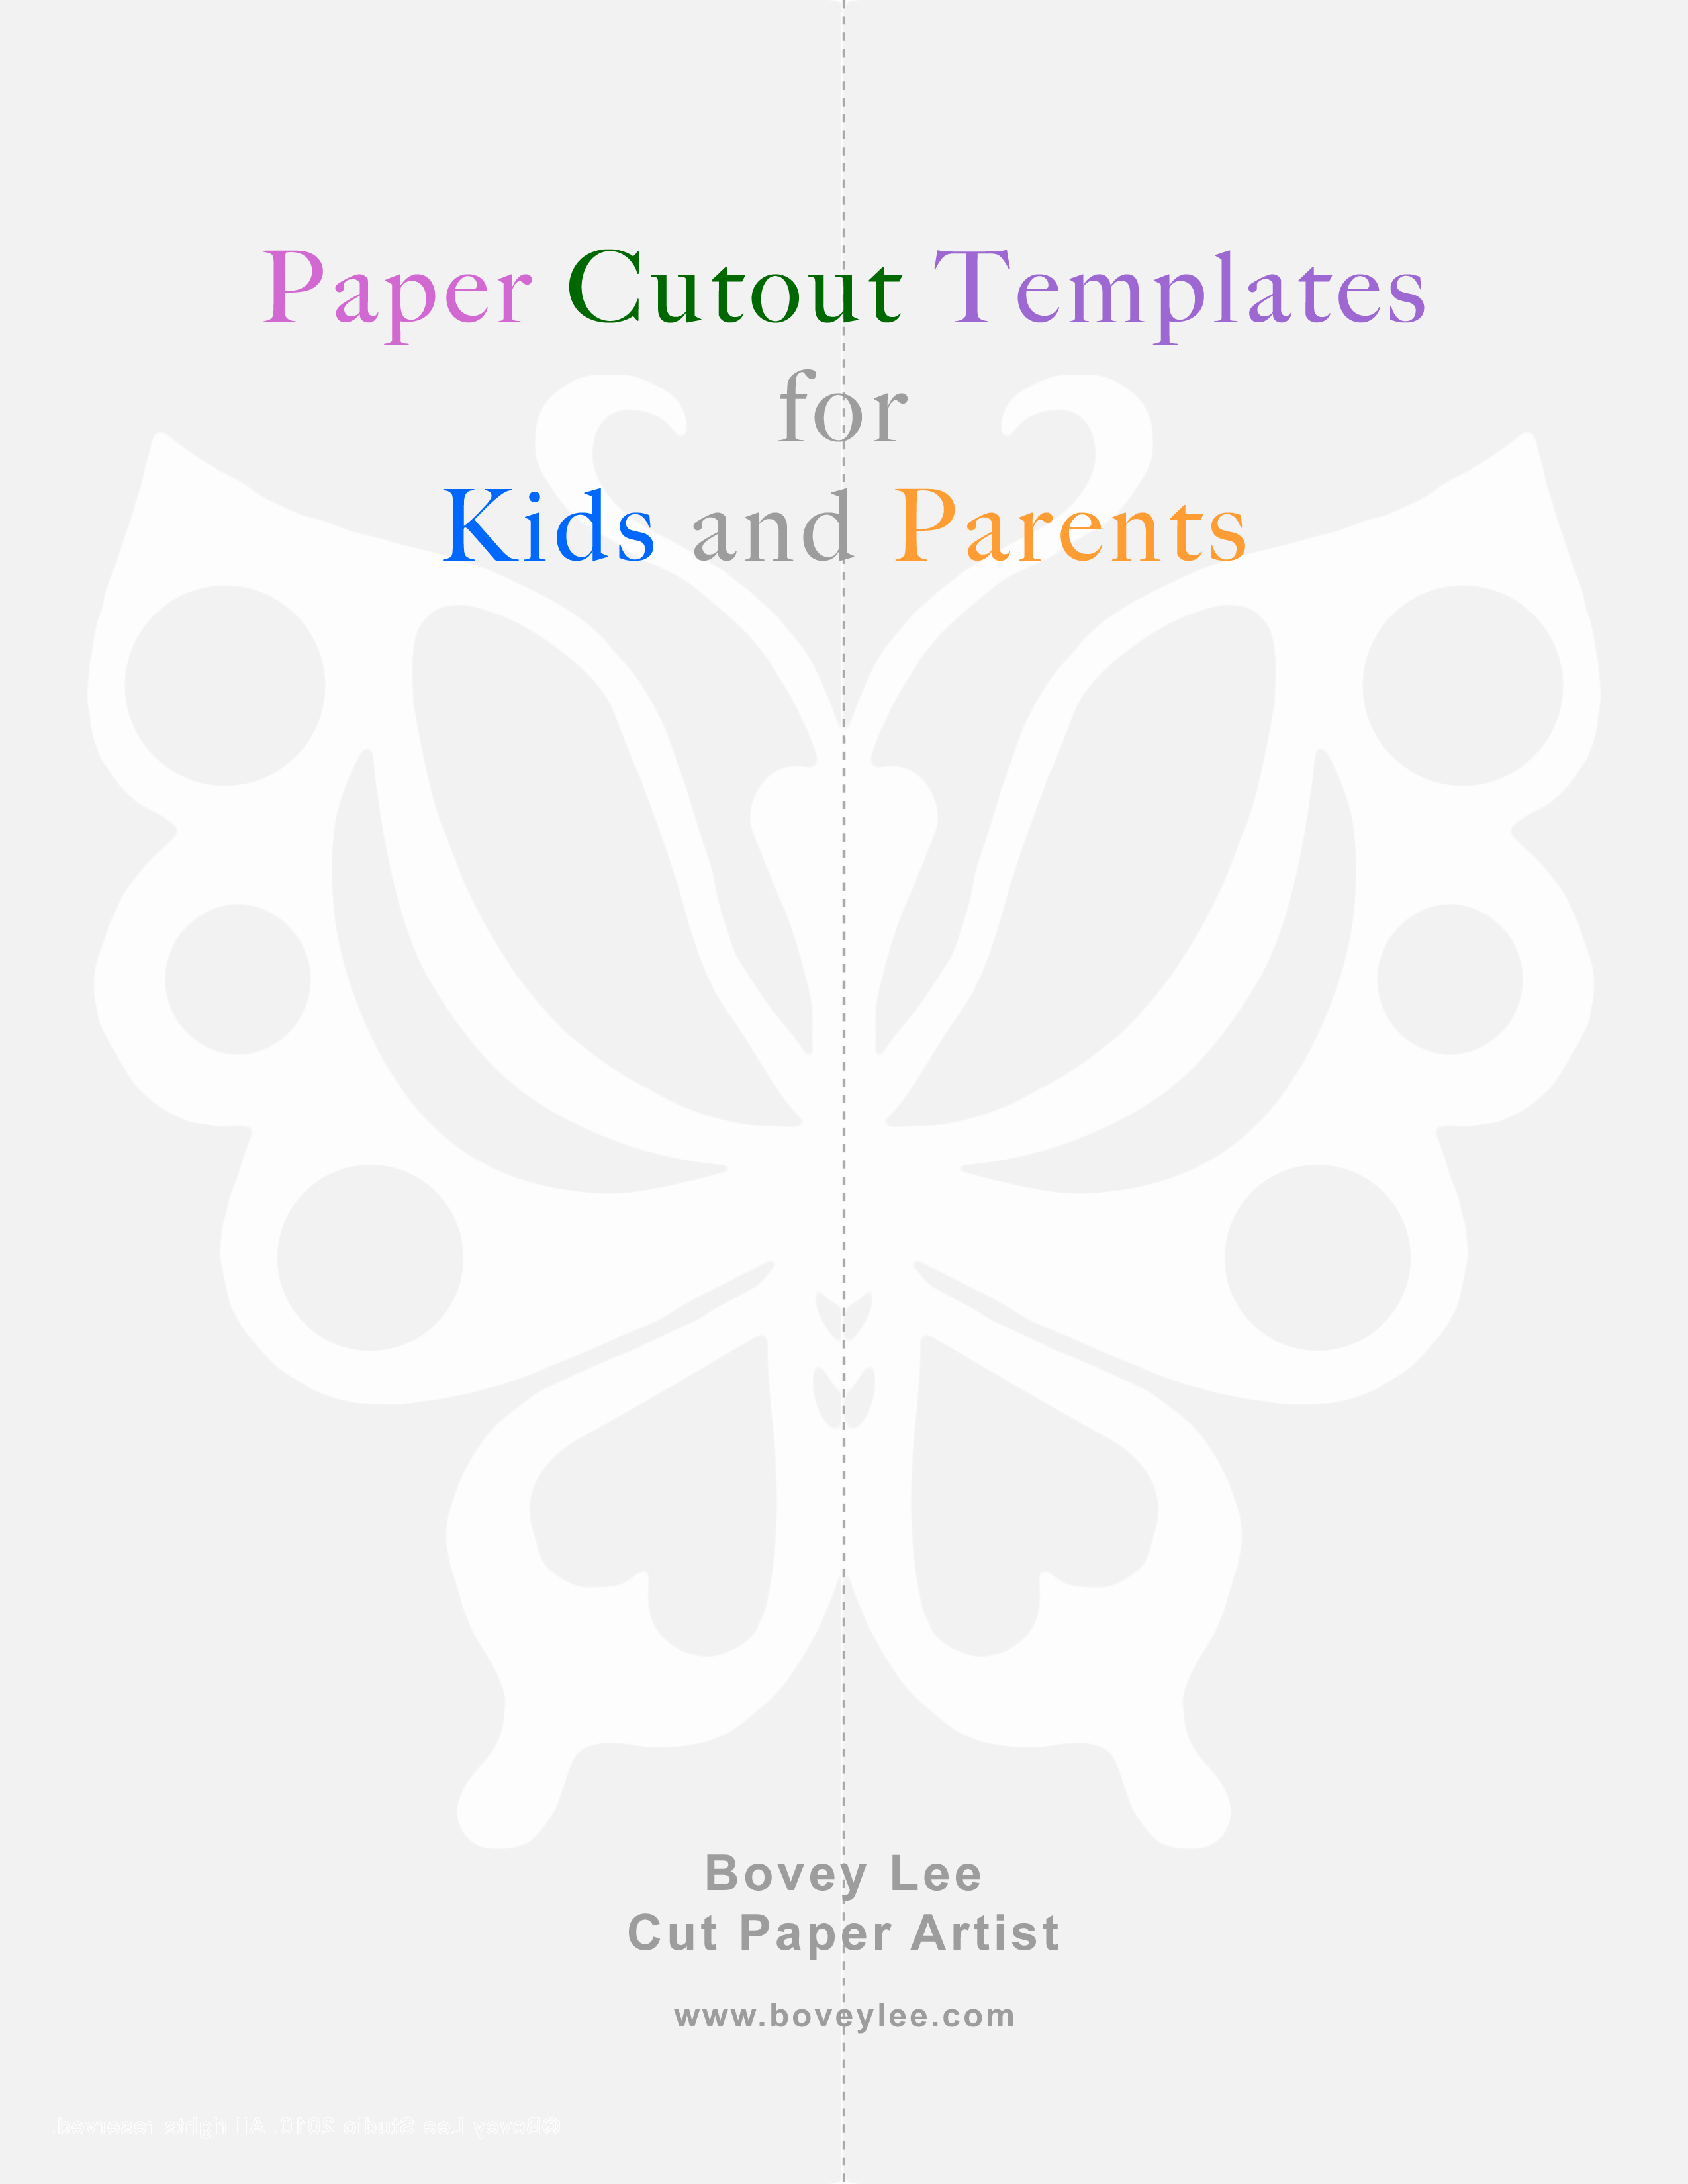 Paper Cut Outs Templates Lovely Free Paper Cutout Templates for Kids and Parents